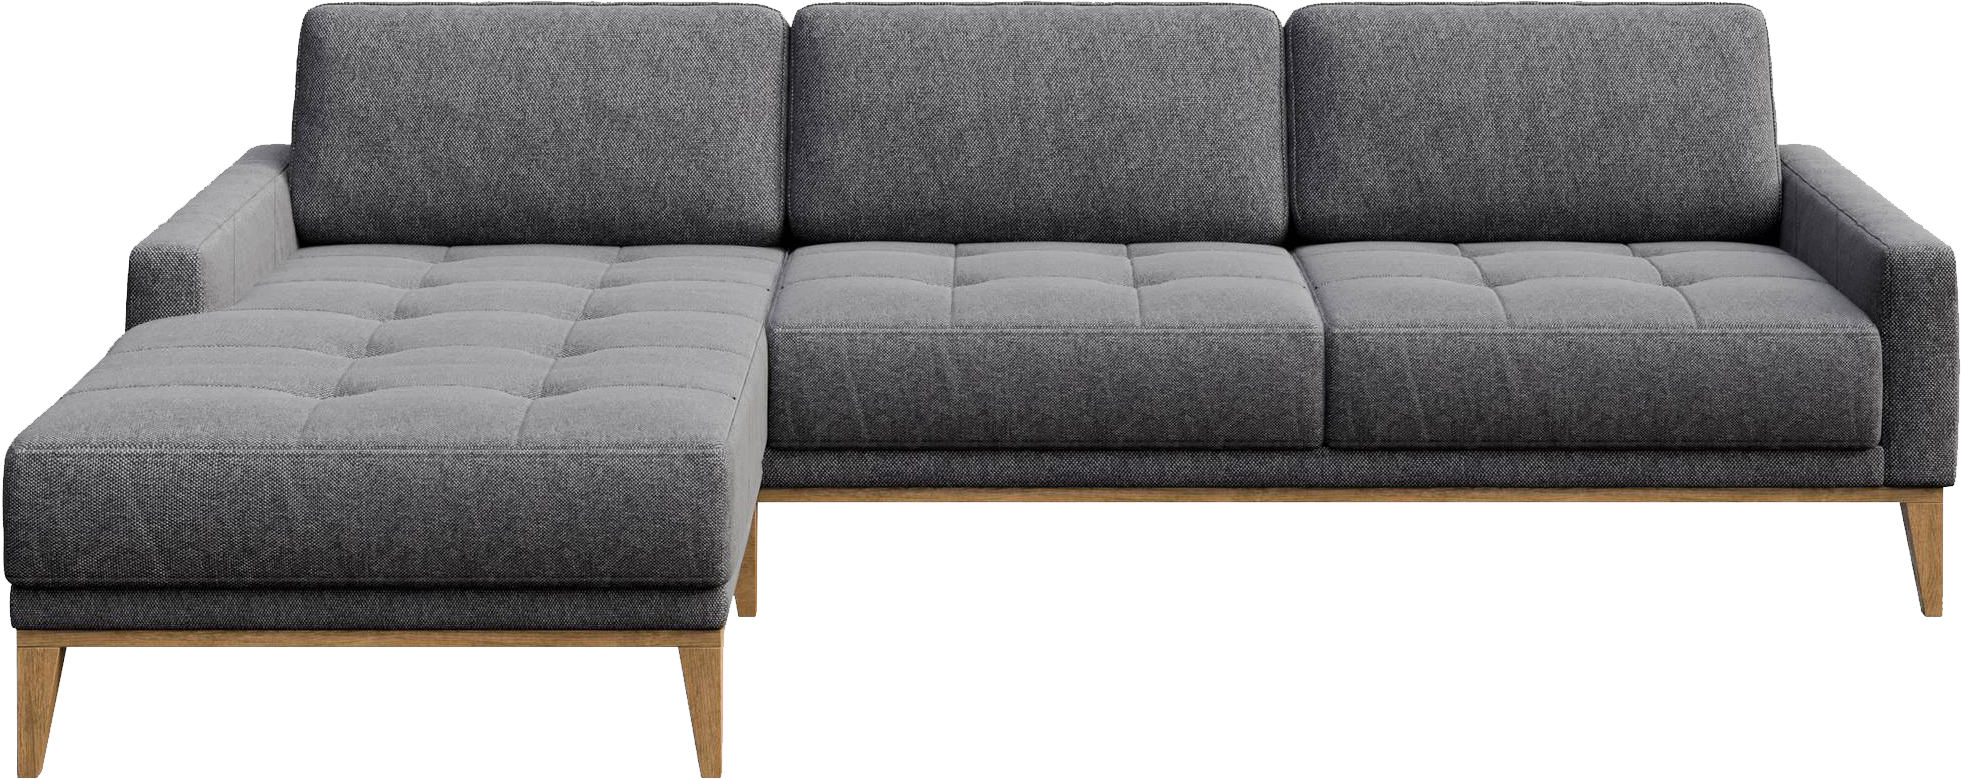 Amazing Mesonica Musso Tufted Corner Sofa Upholstered In Grey Fabric Machost Co Dining Chair Design Ideas Machostcouk